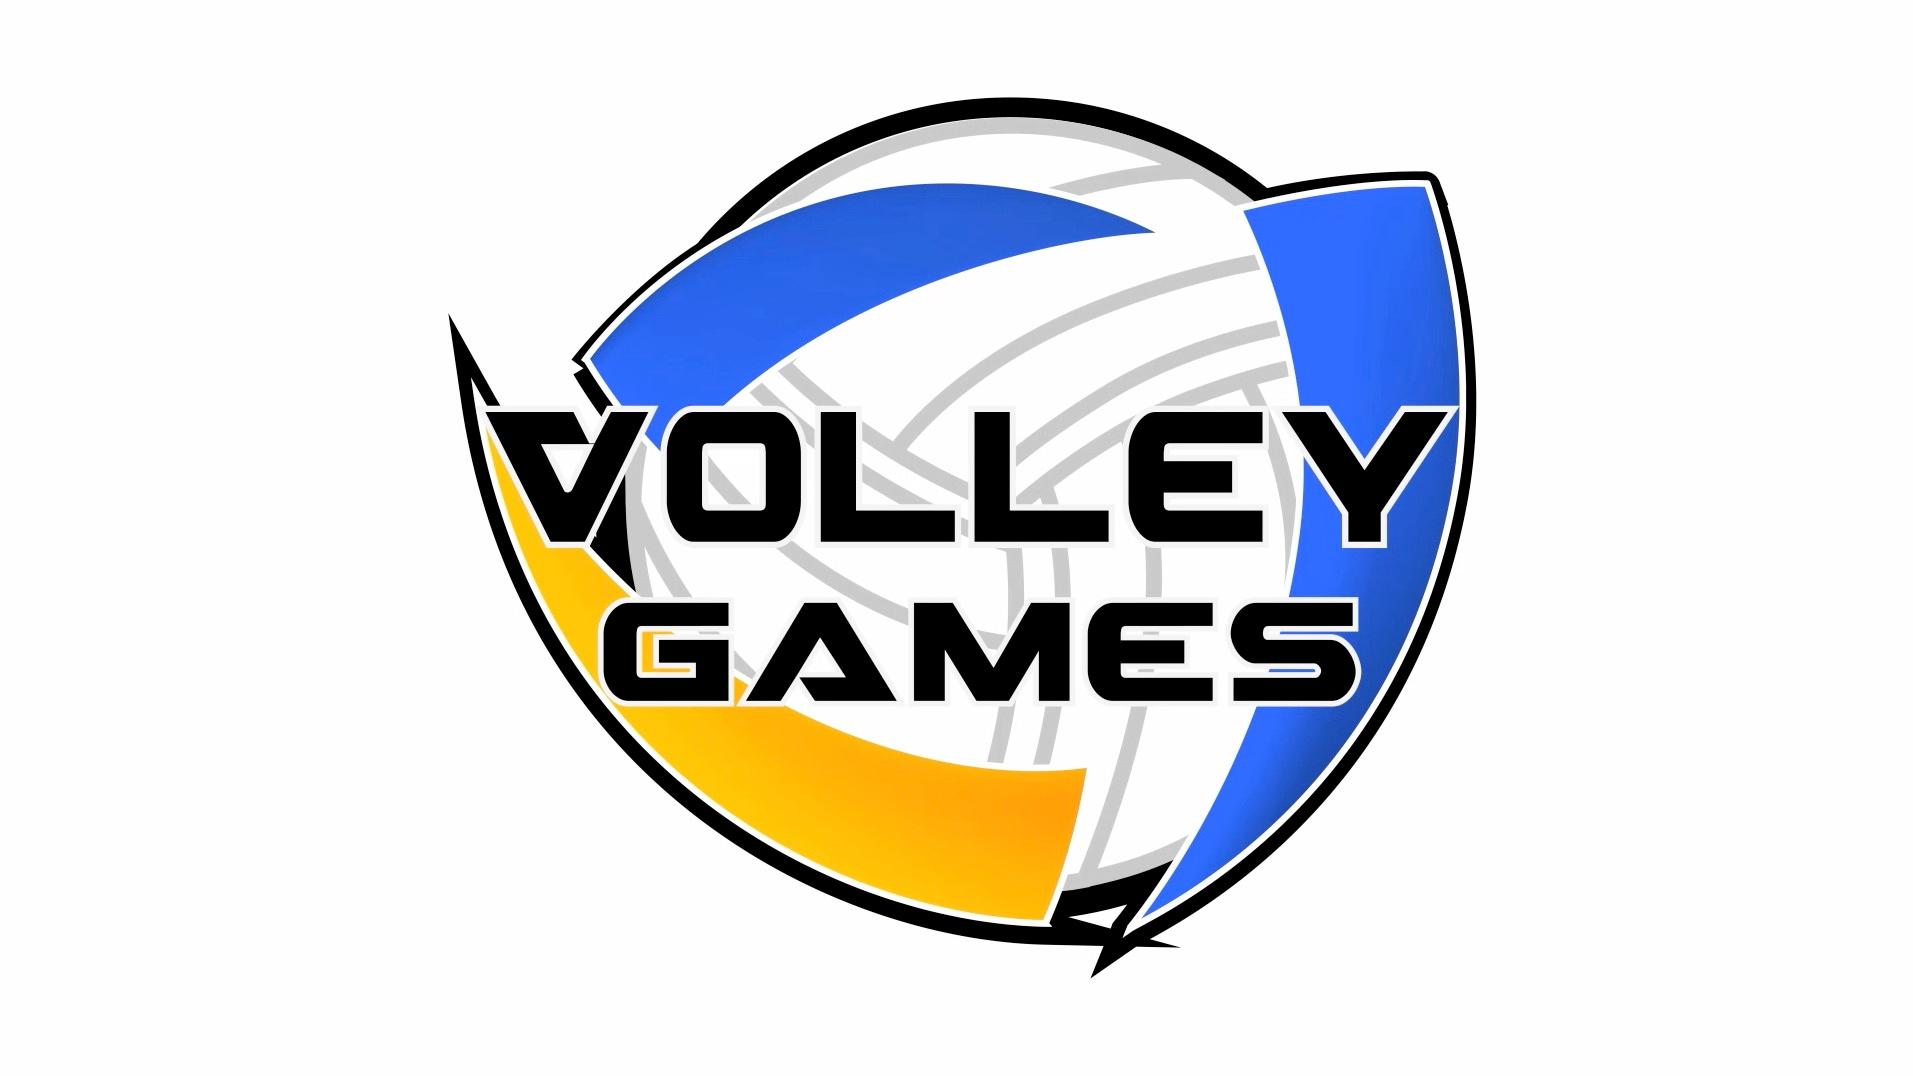 Volley Games - 10/03/17